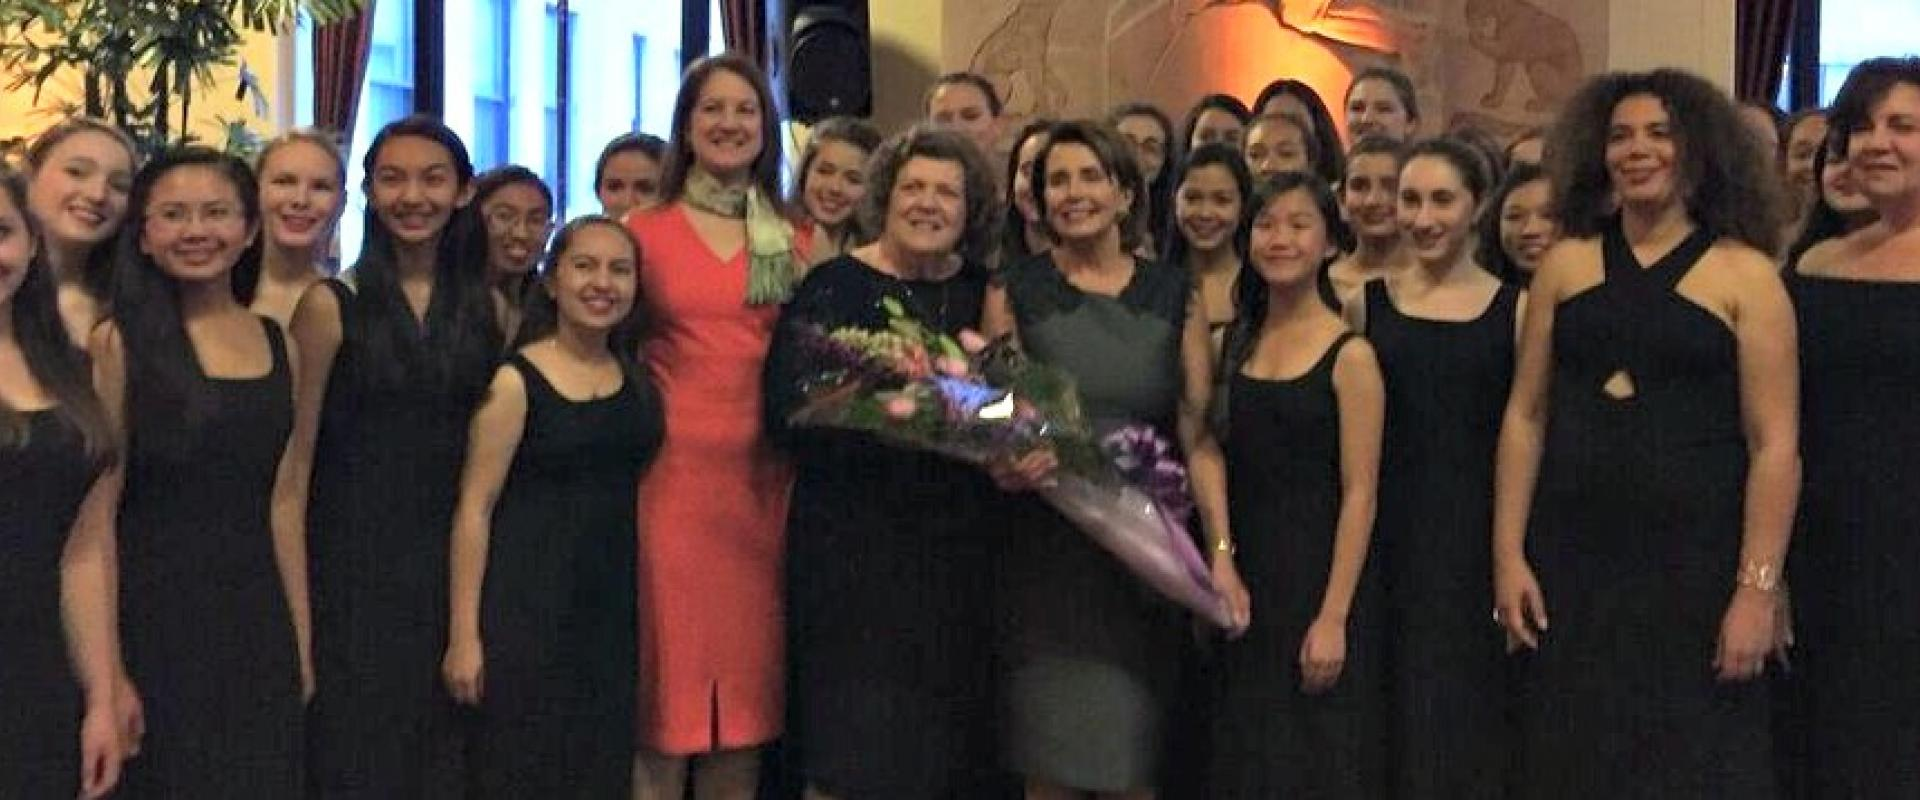 "Congresswoman Pelosi joins the San Francisco Girls Chorus at their 37th Season ""Celebrating Strong Women's Voices"" Gala where she discussed arts as a vital part of our national life, and arts education as a key part of our children's development."